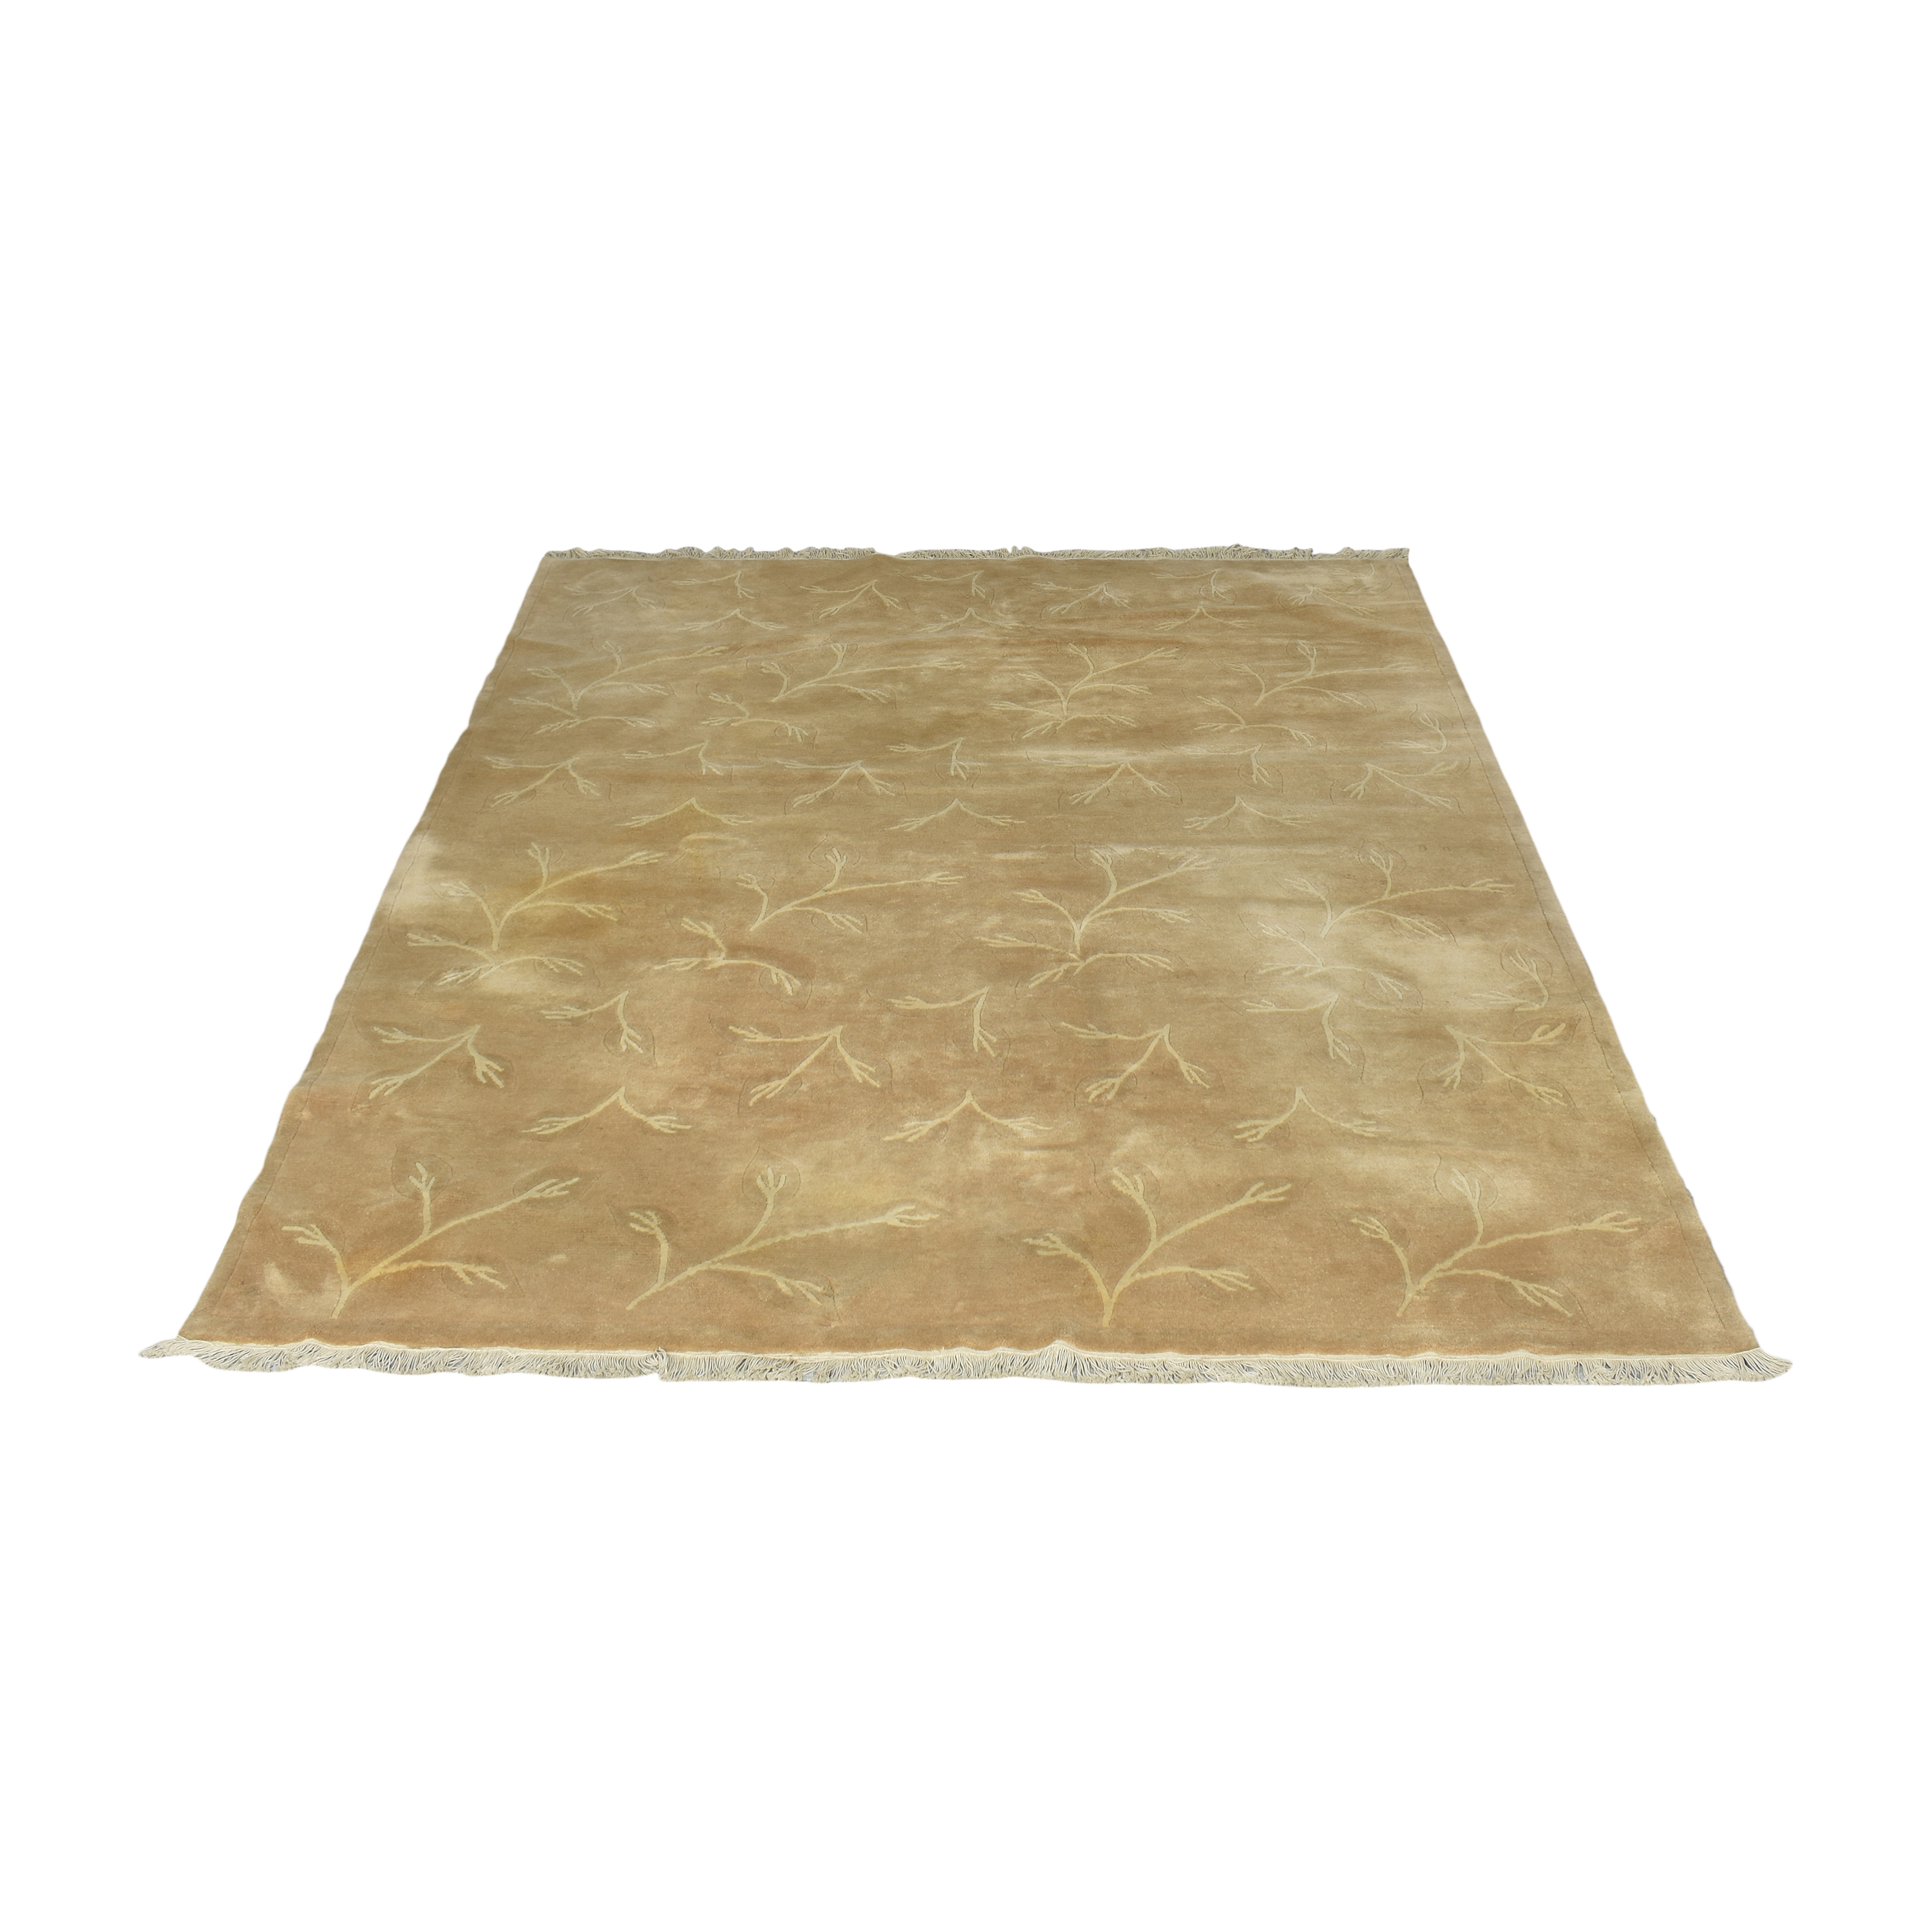 Patterned Area Rug dimensions